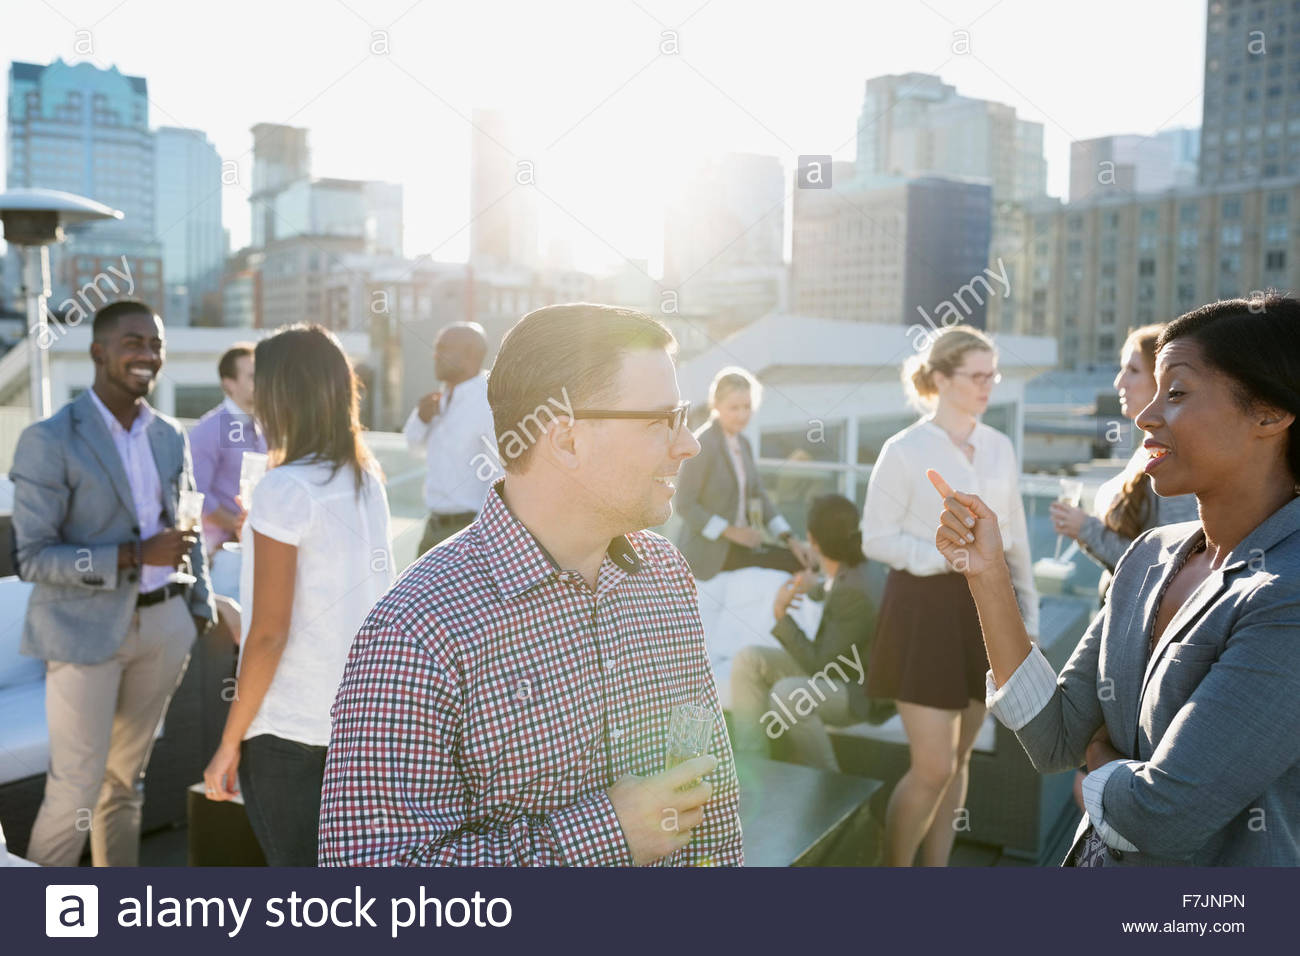 Business people drinking champagne socializing on sunny rooftop - Stock Image